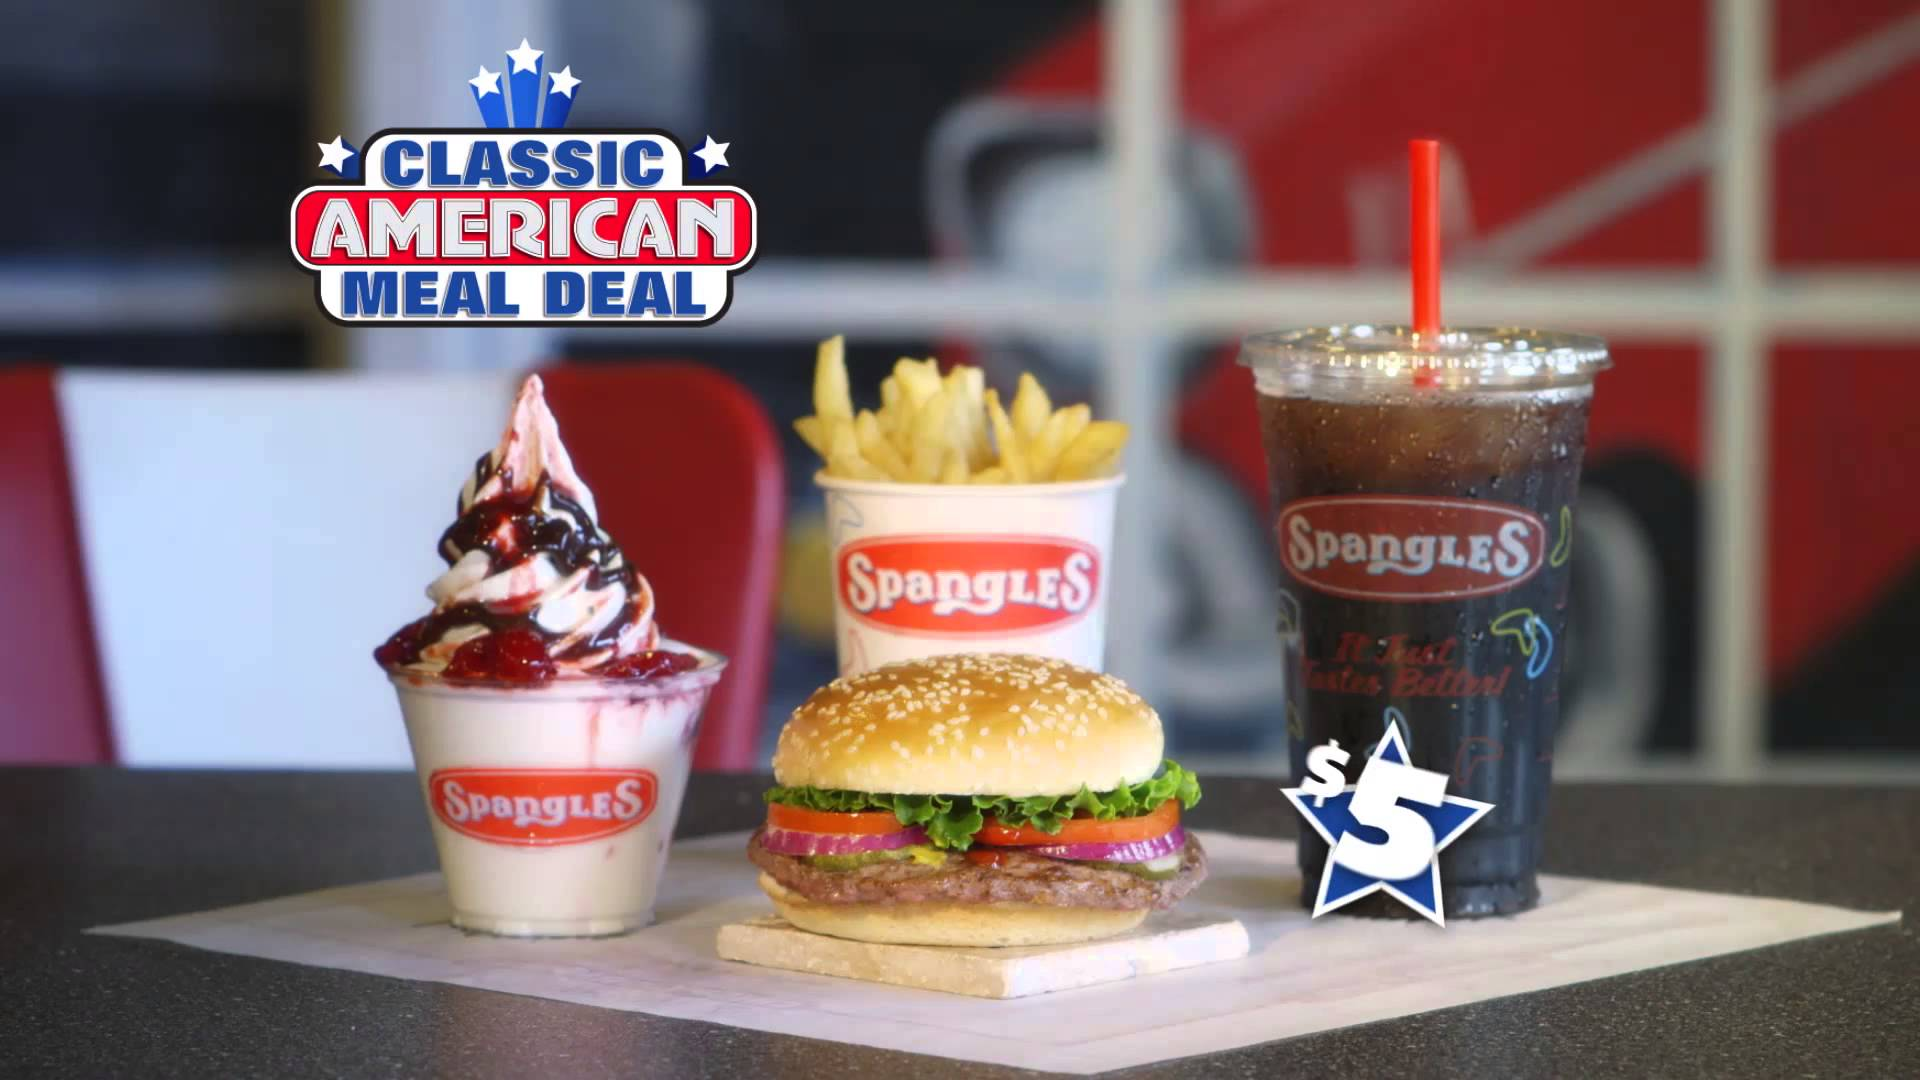 Spangles $5 Classic American Meal Deal Testimonial Commercial v2 ...